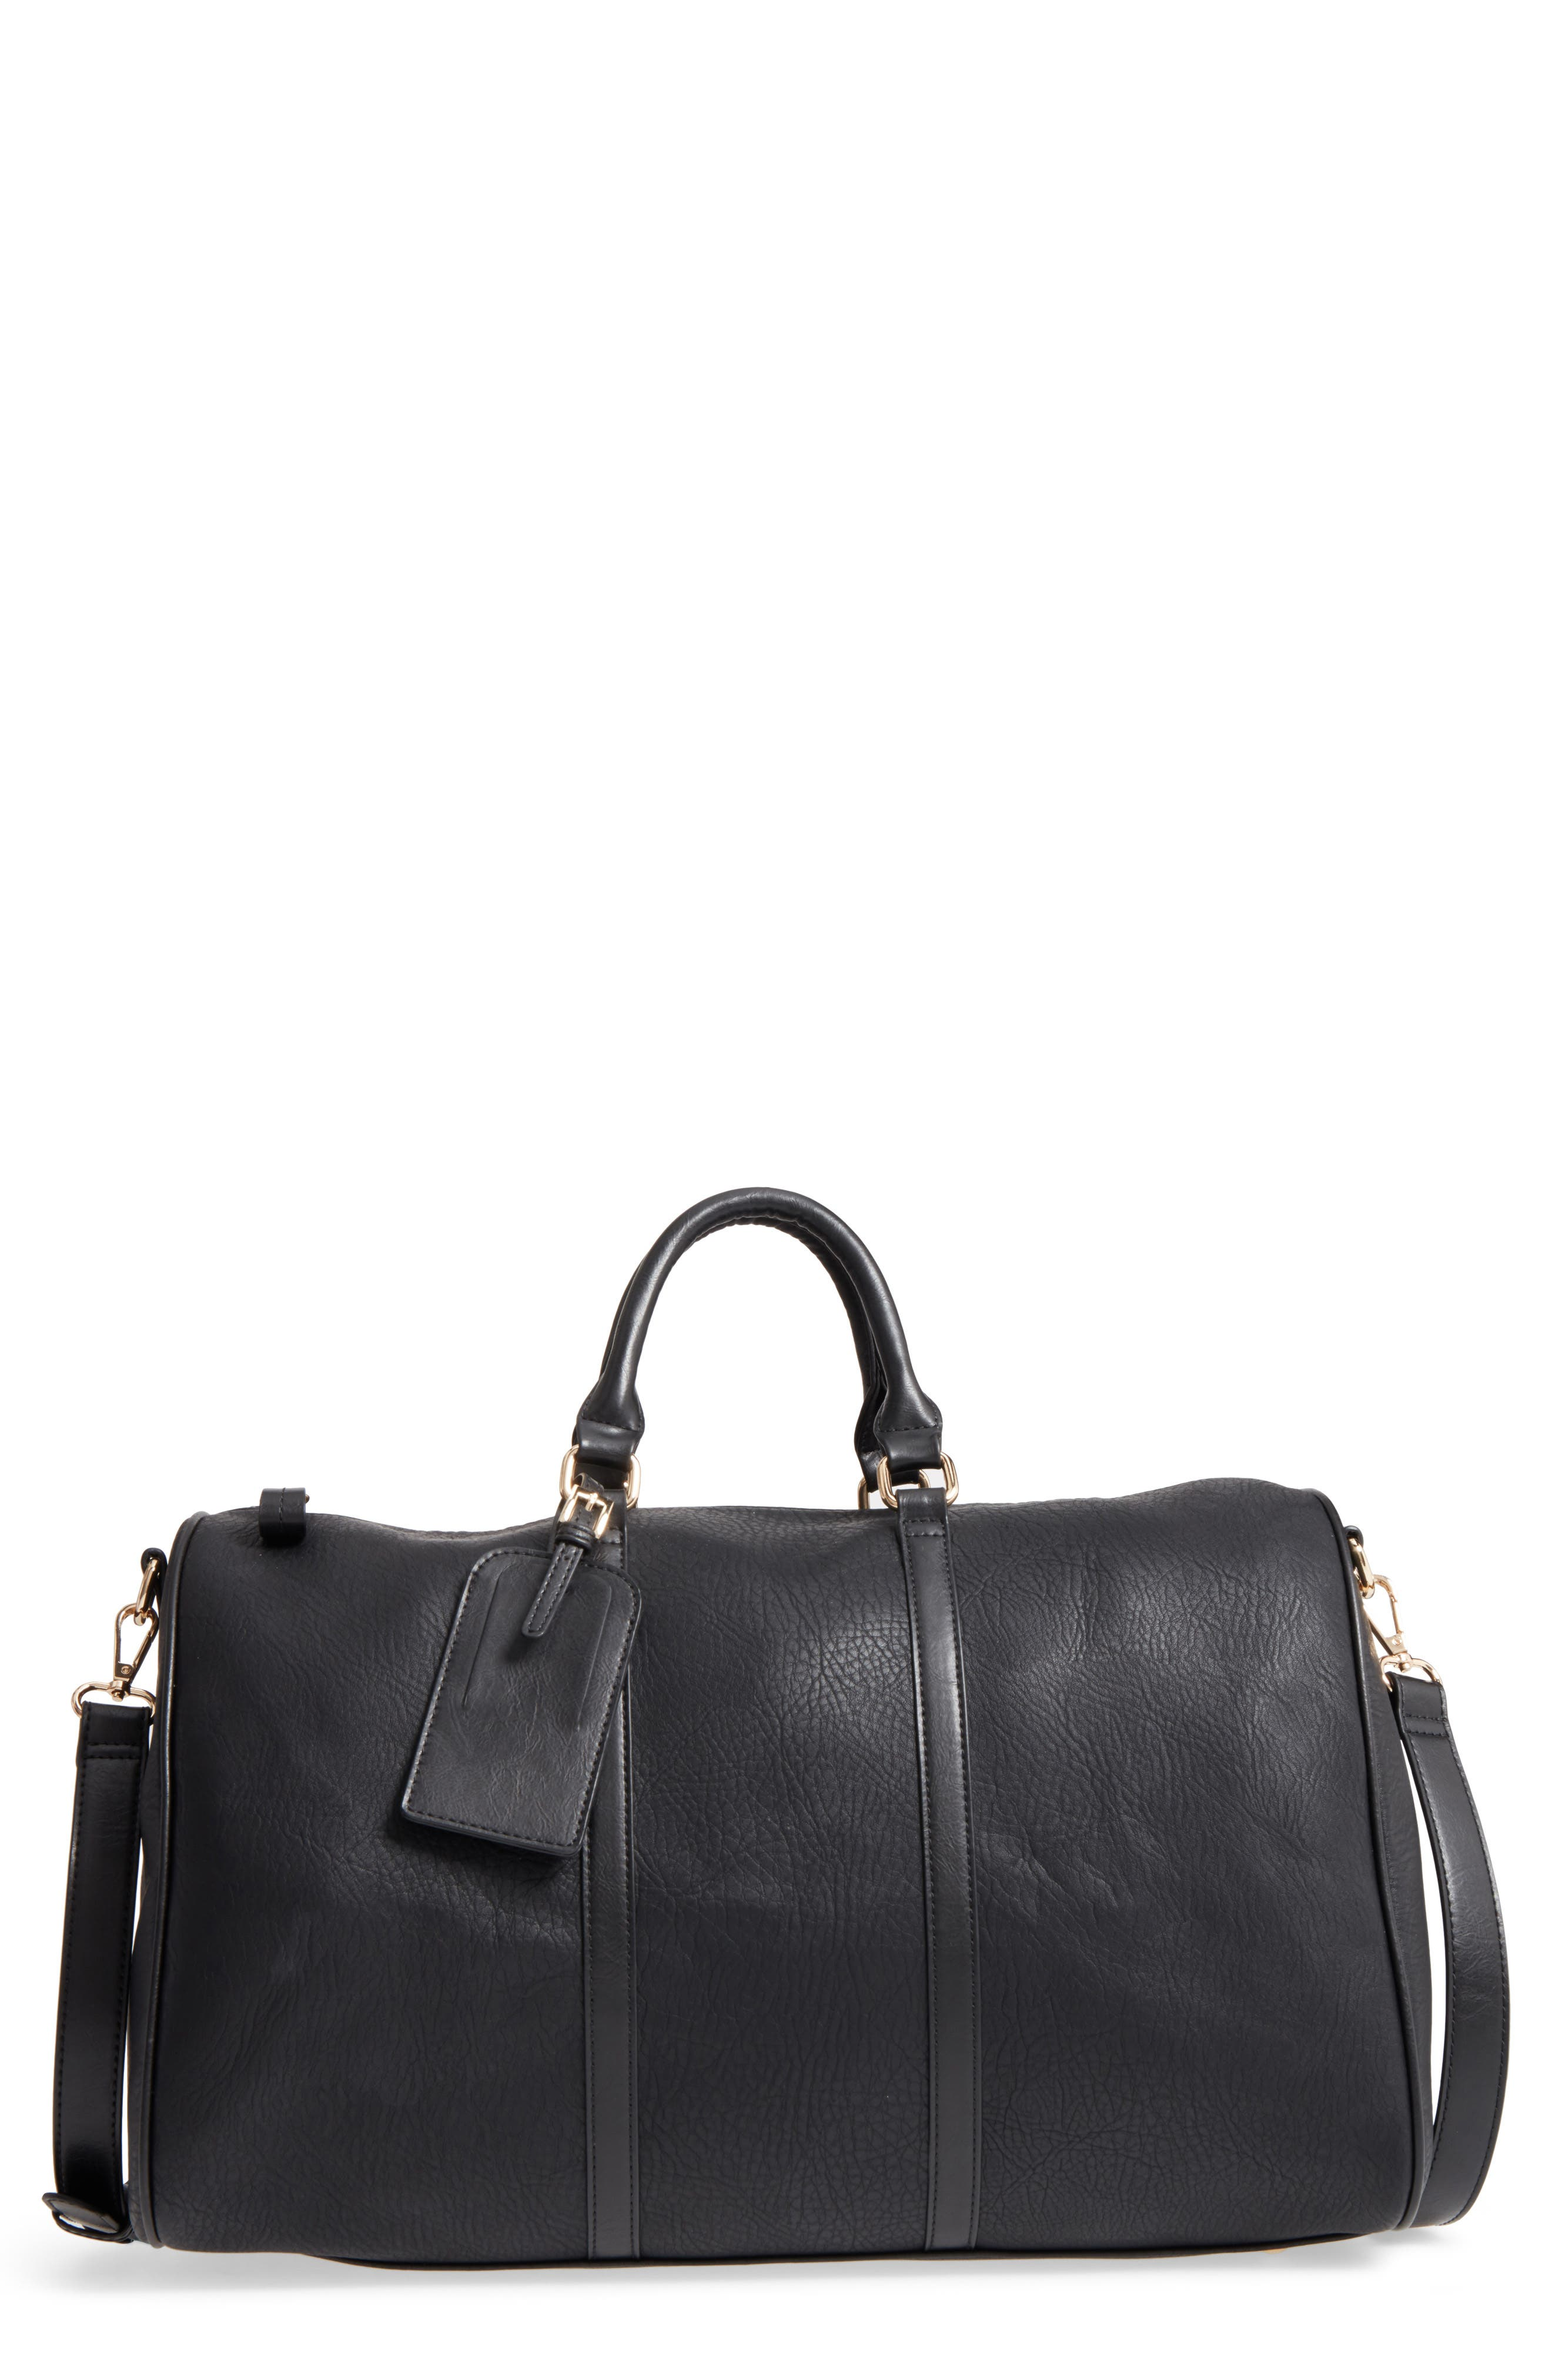 'Cassidy' Faux Leather Duffel Bag,                         Main,                         color, 002